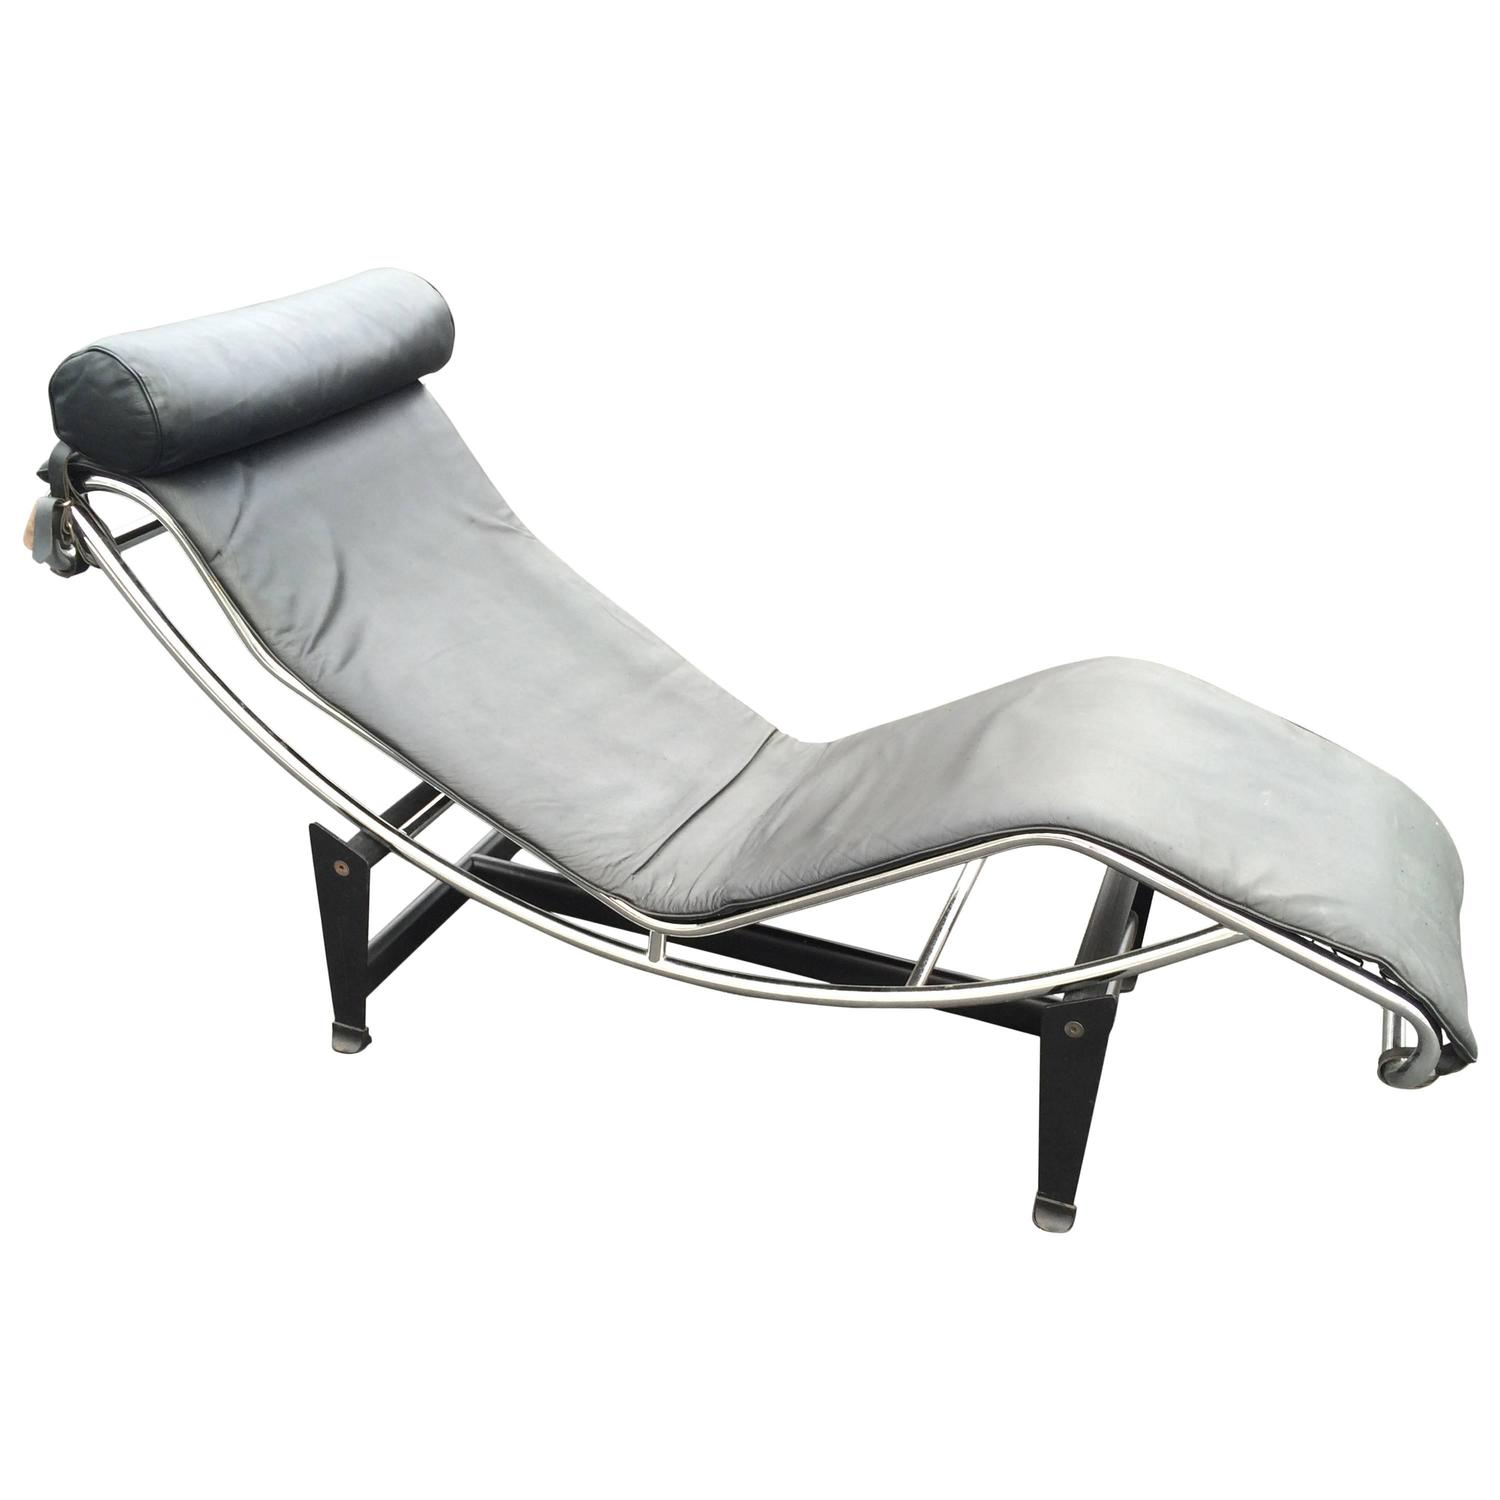 Le corbusier lc4 chaise longue in black leather at 1stdibs for Chaise lounge corbusier